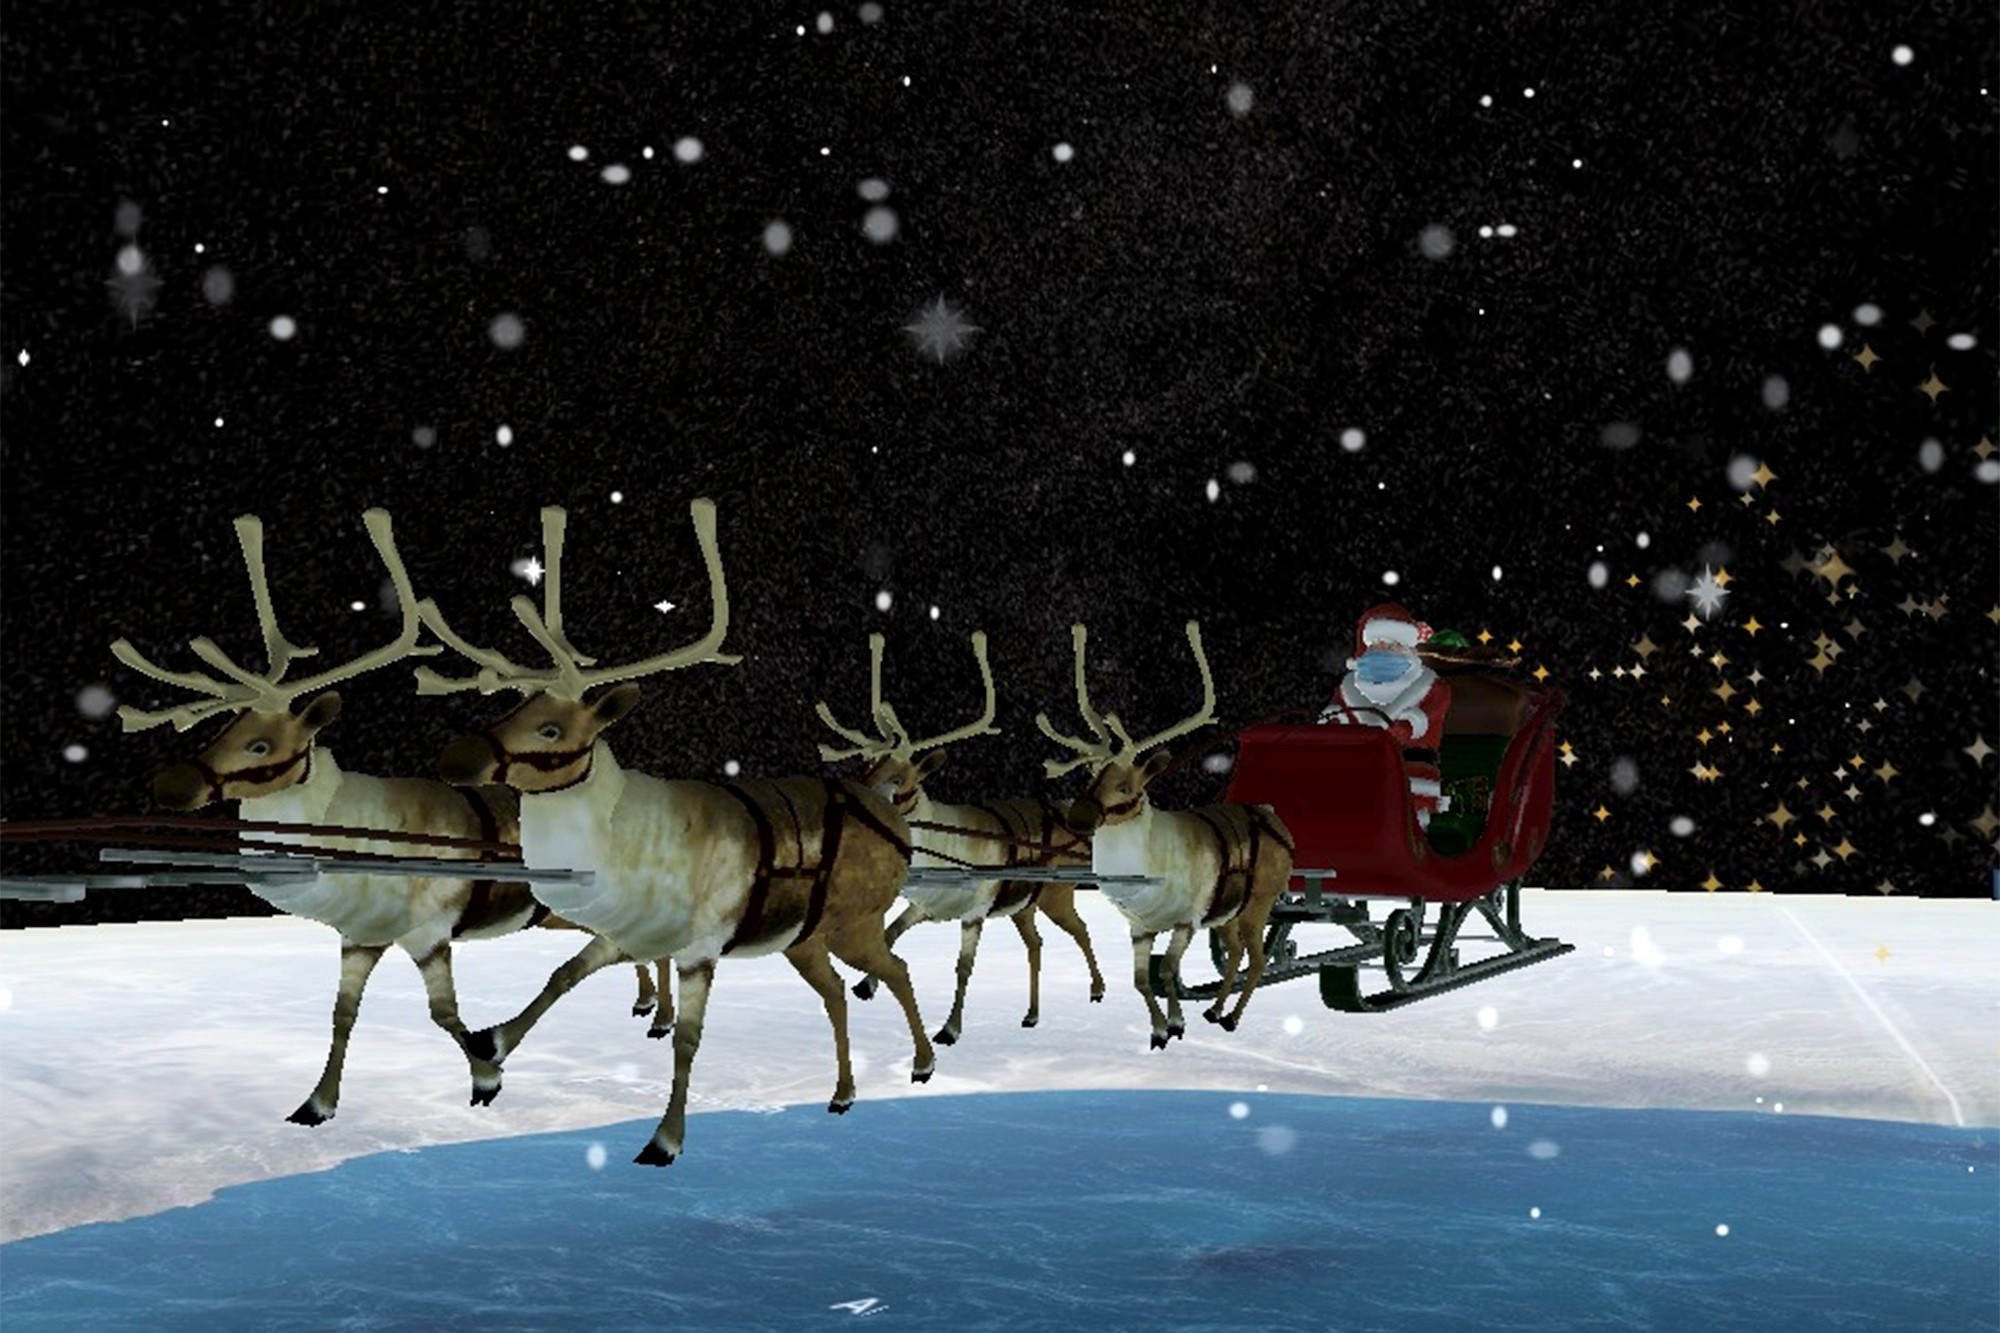 2020 Santa tracker is being COVID safe sporting mask